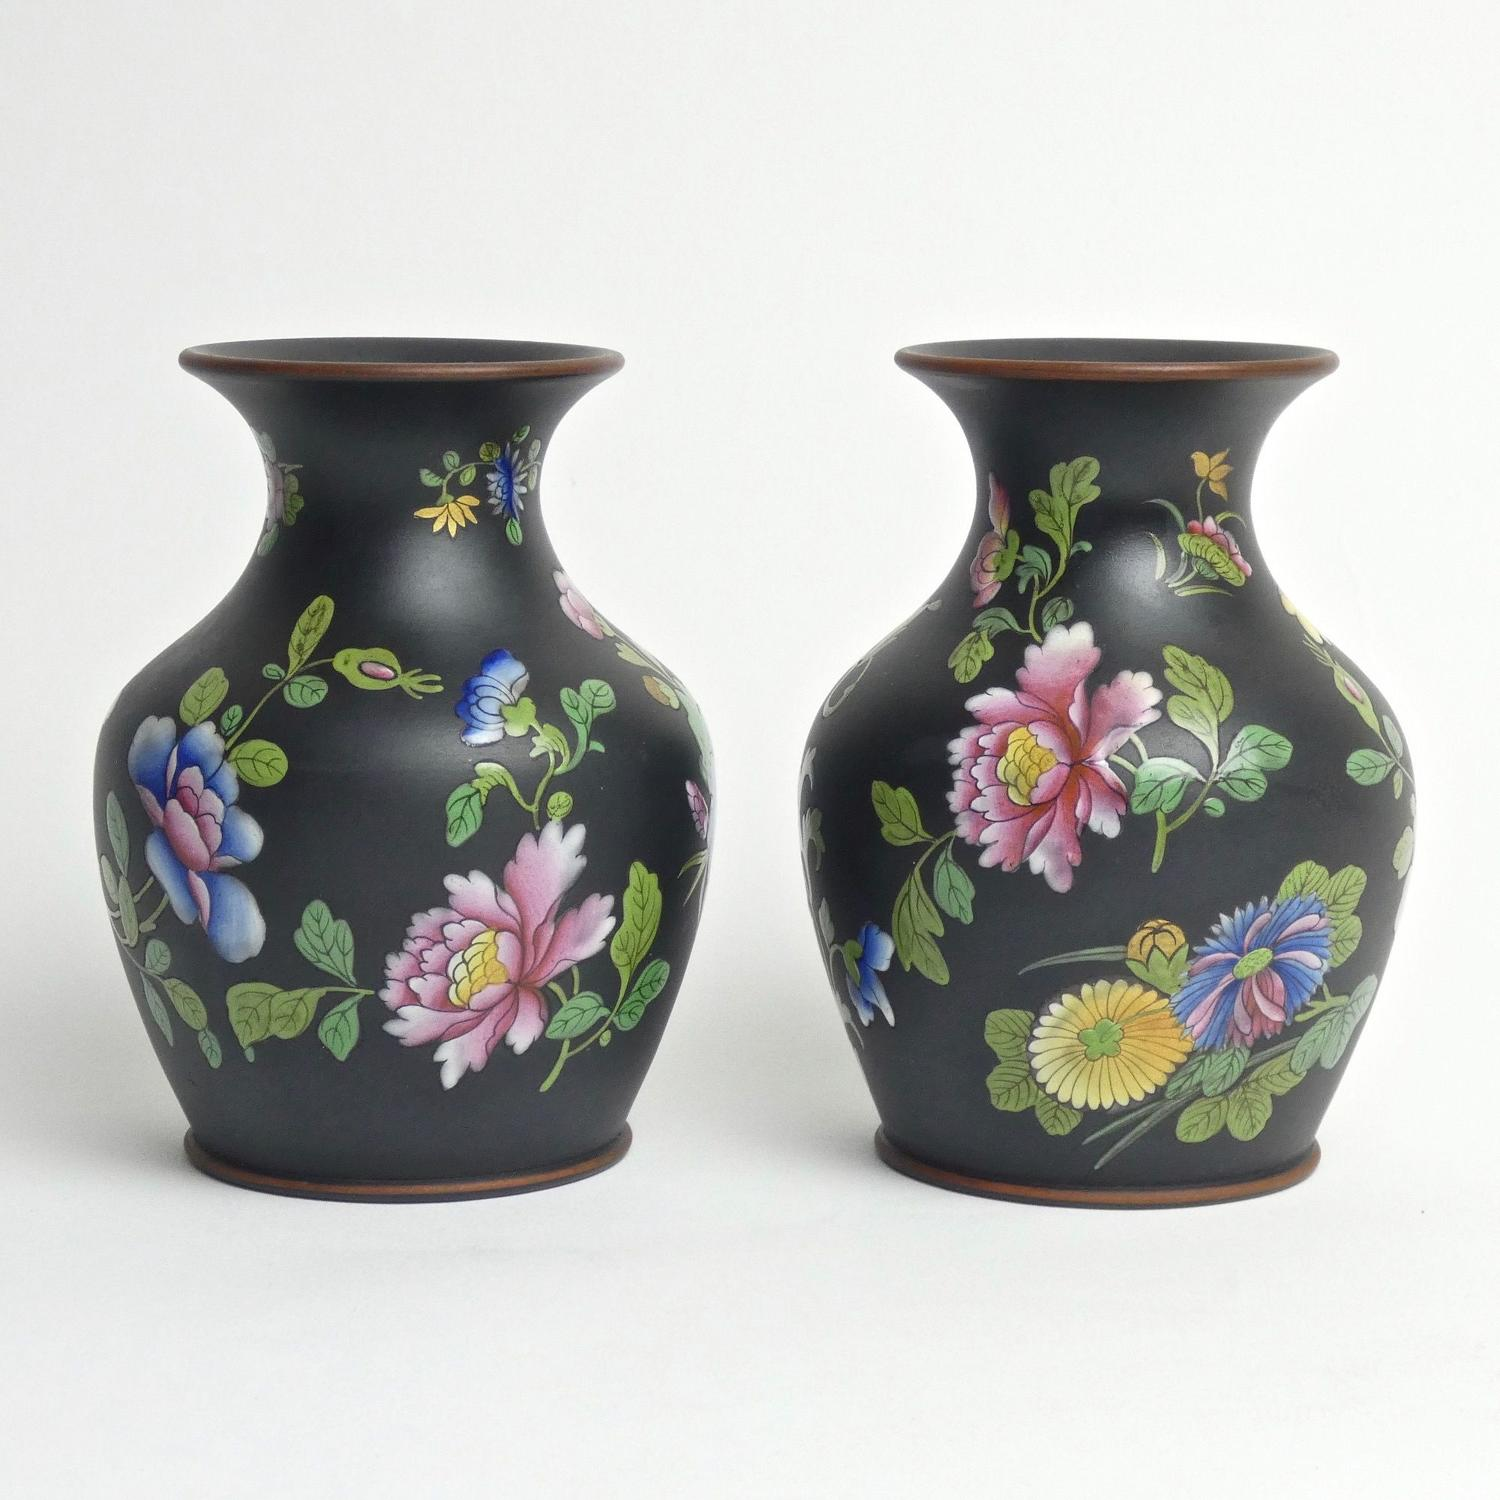 Pair of Capriware on basalt vases